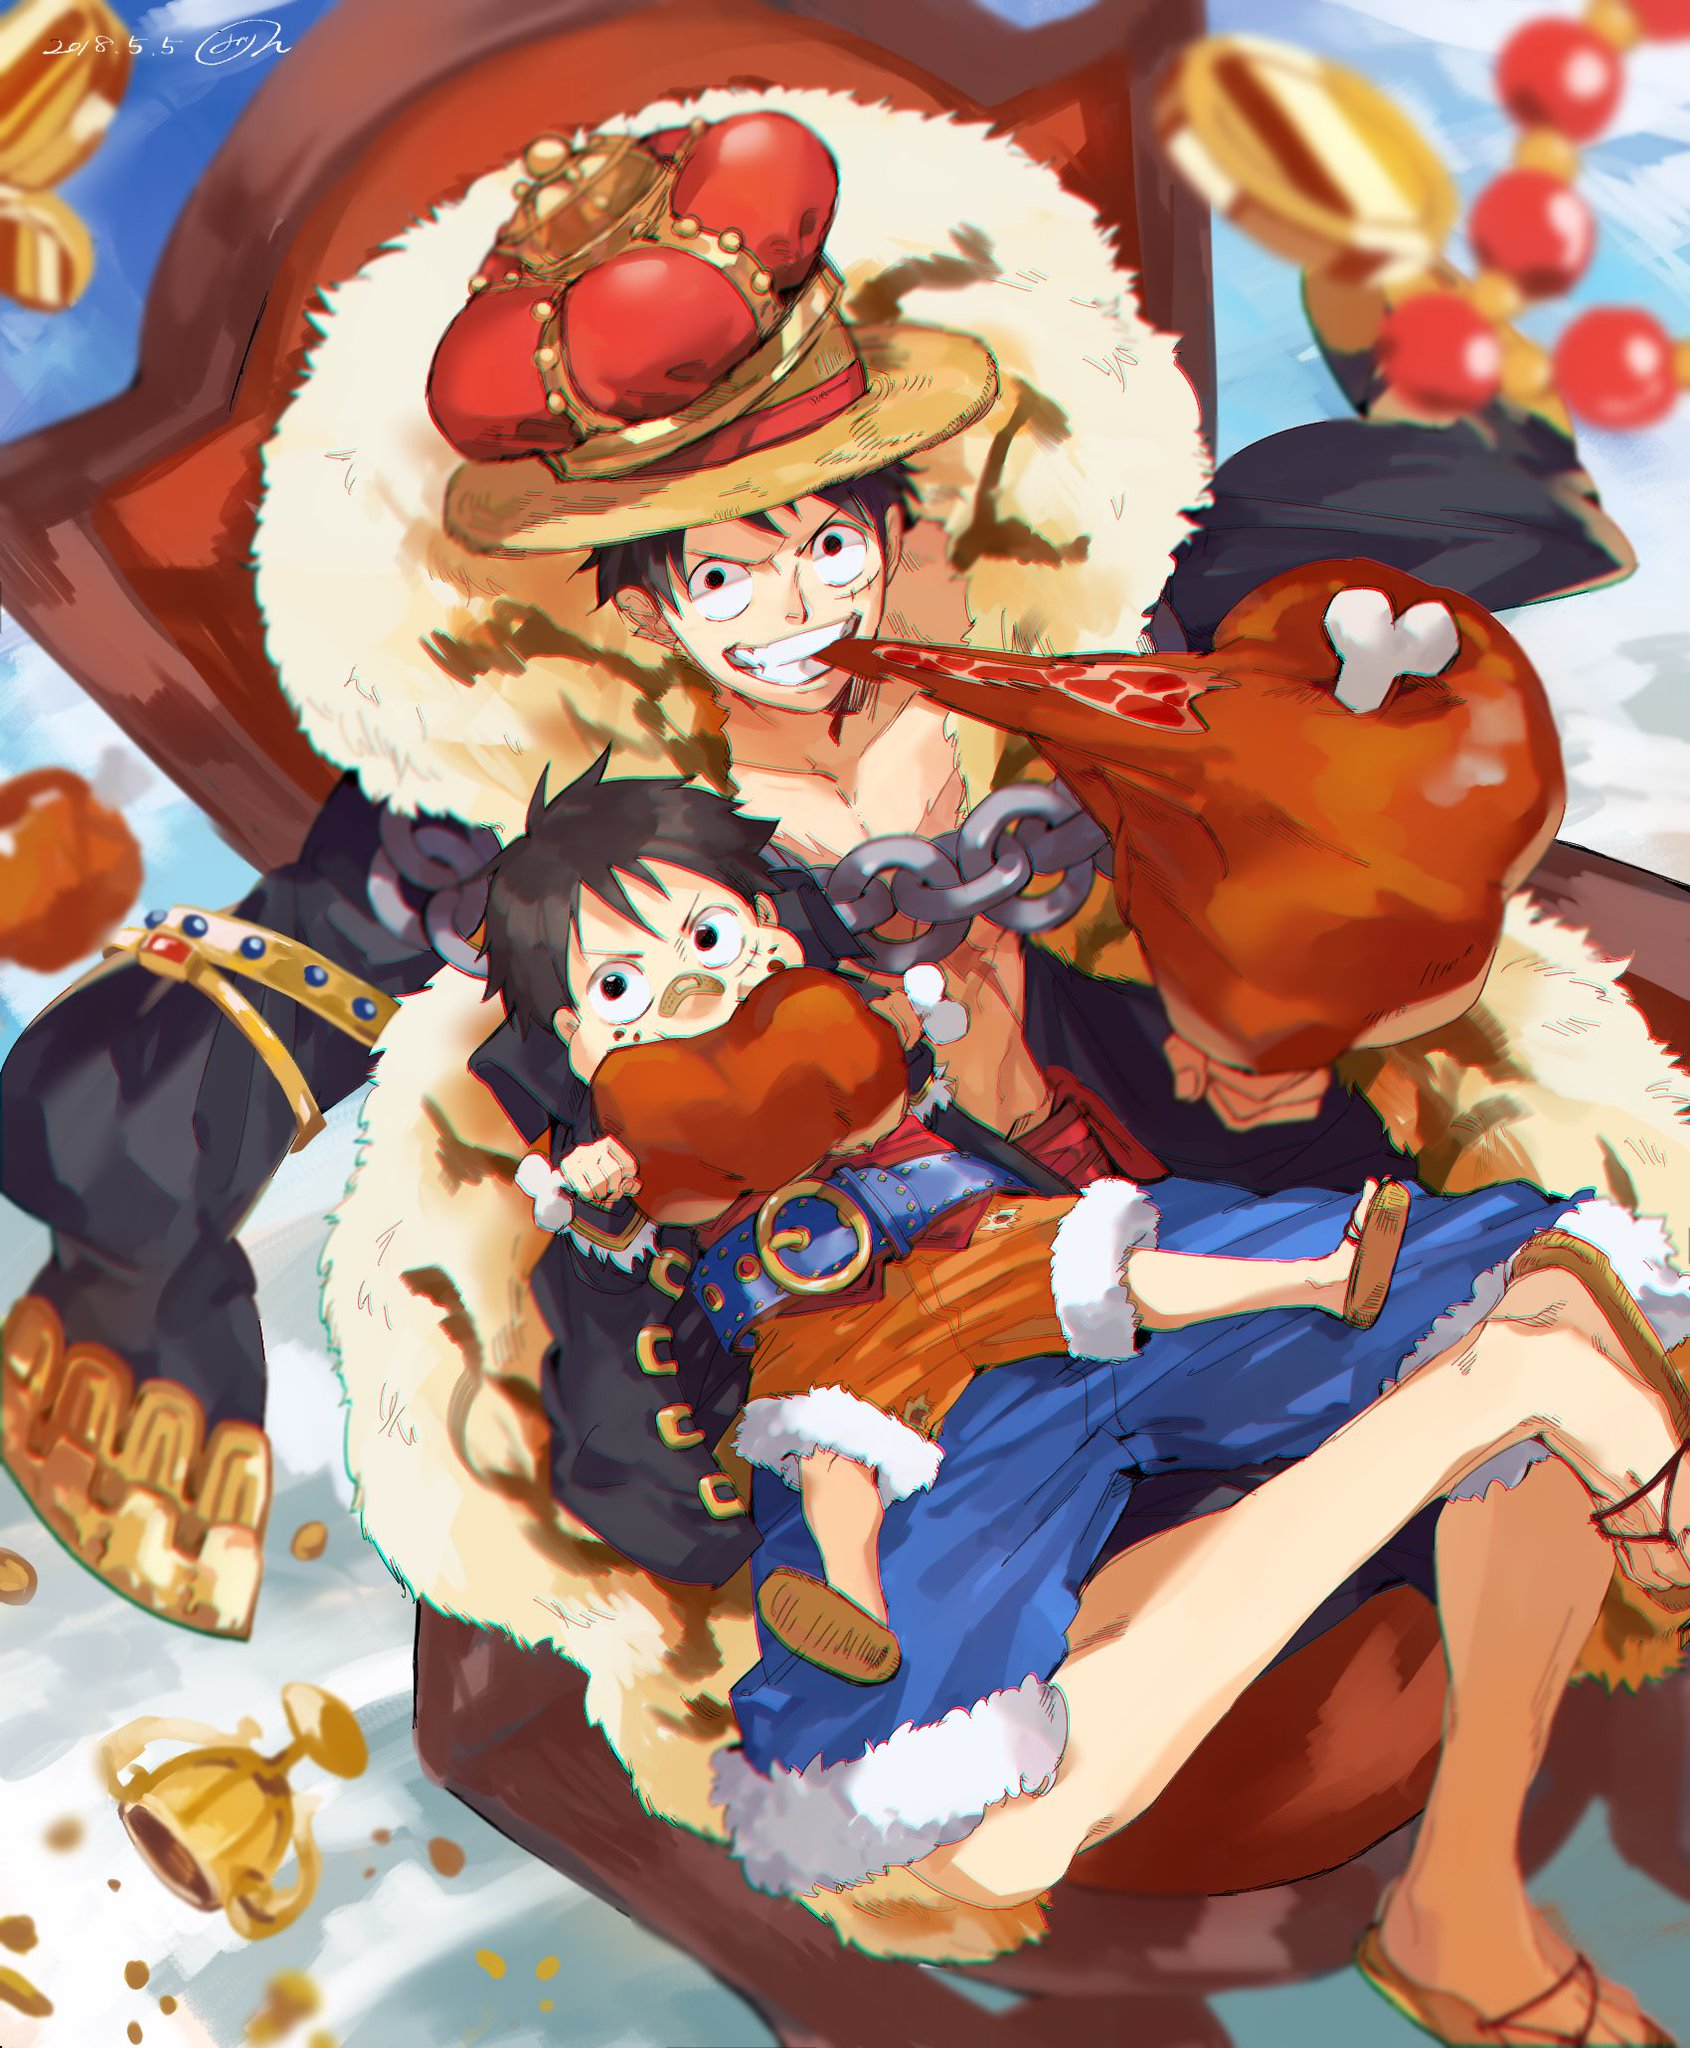 Monkey D Luffy One Piece Image 2315142 Zerochan